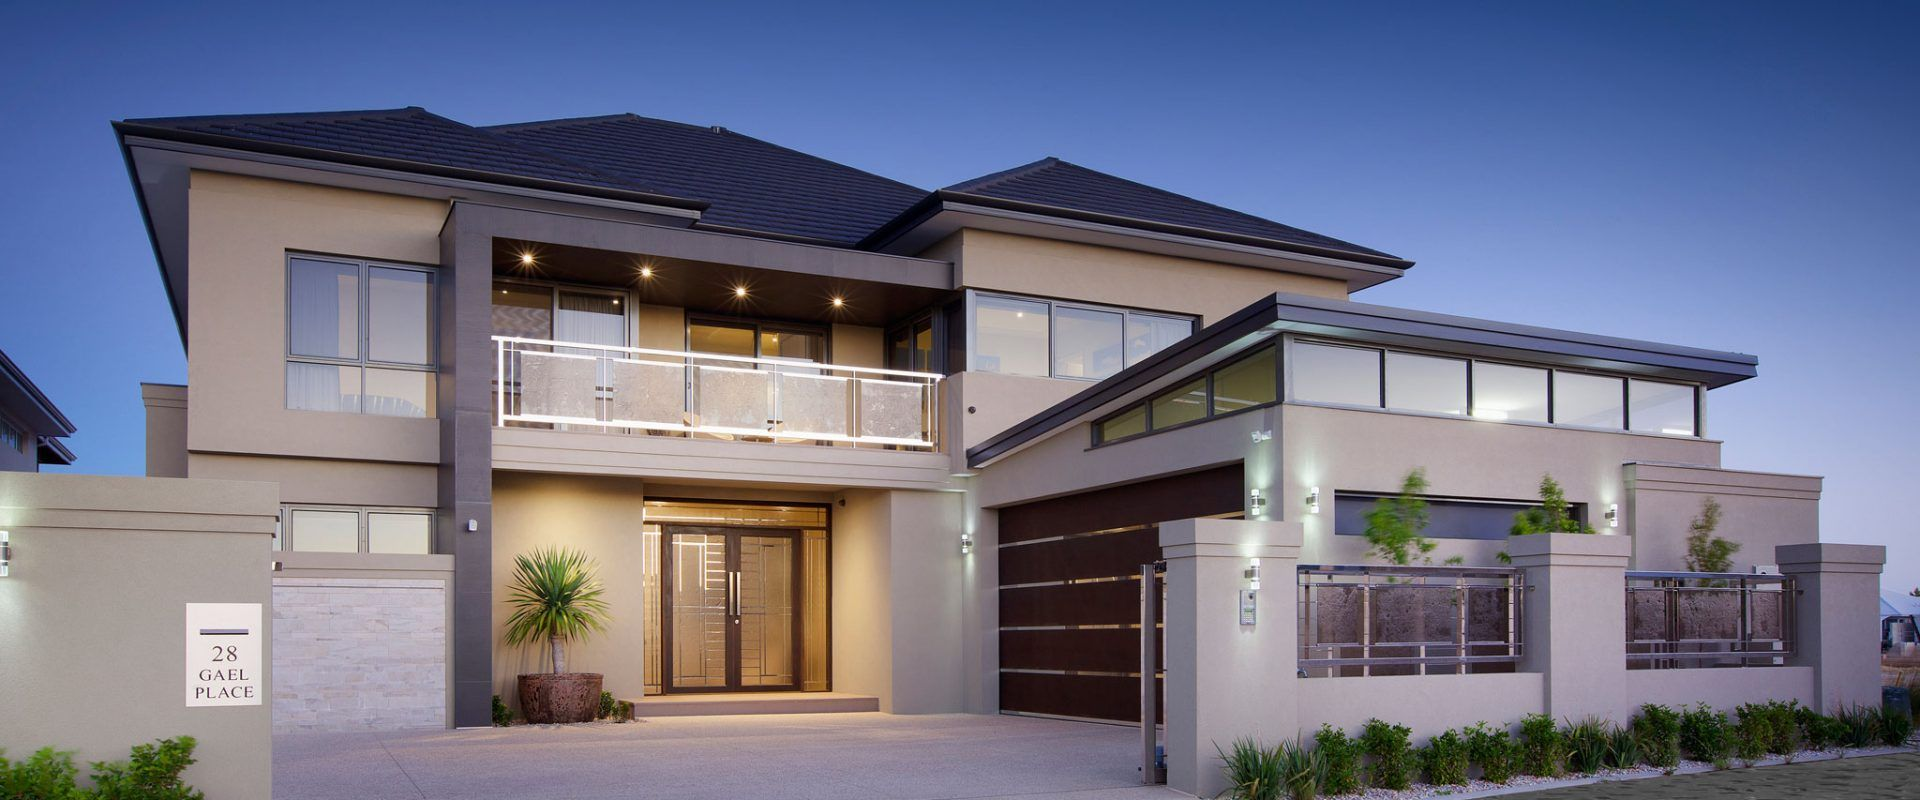 Pin By Domination Homes On Www Dominationhomes Com Au House Design Luxury House Designs Luxury Homes Dream Houses